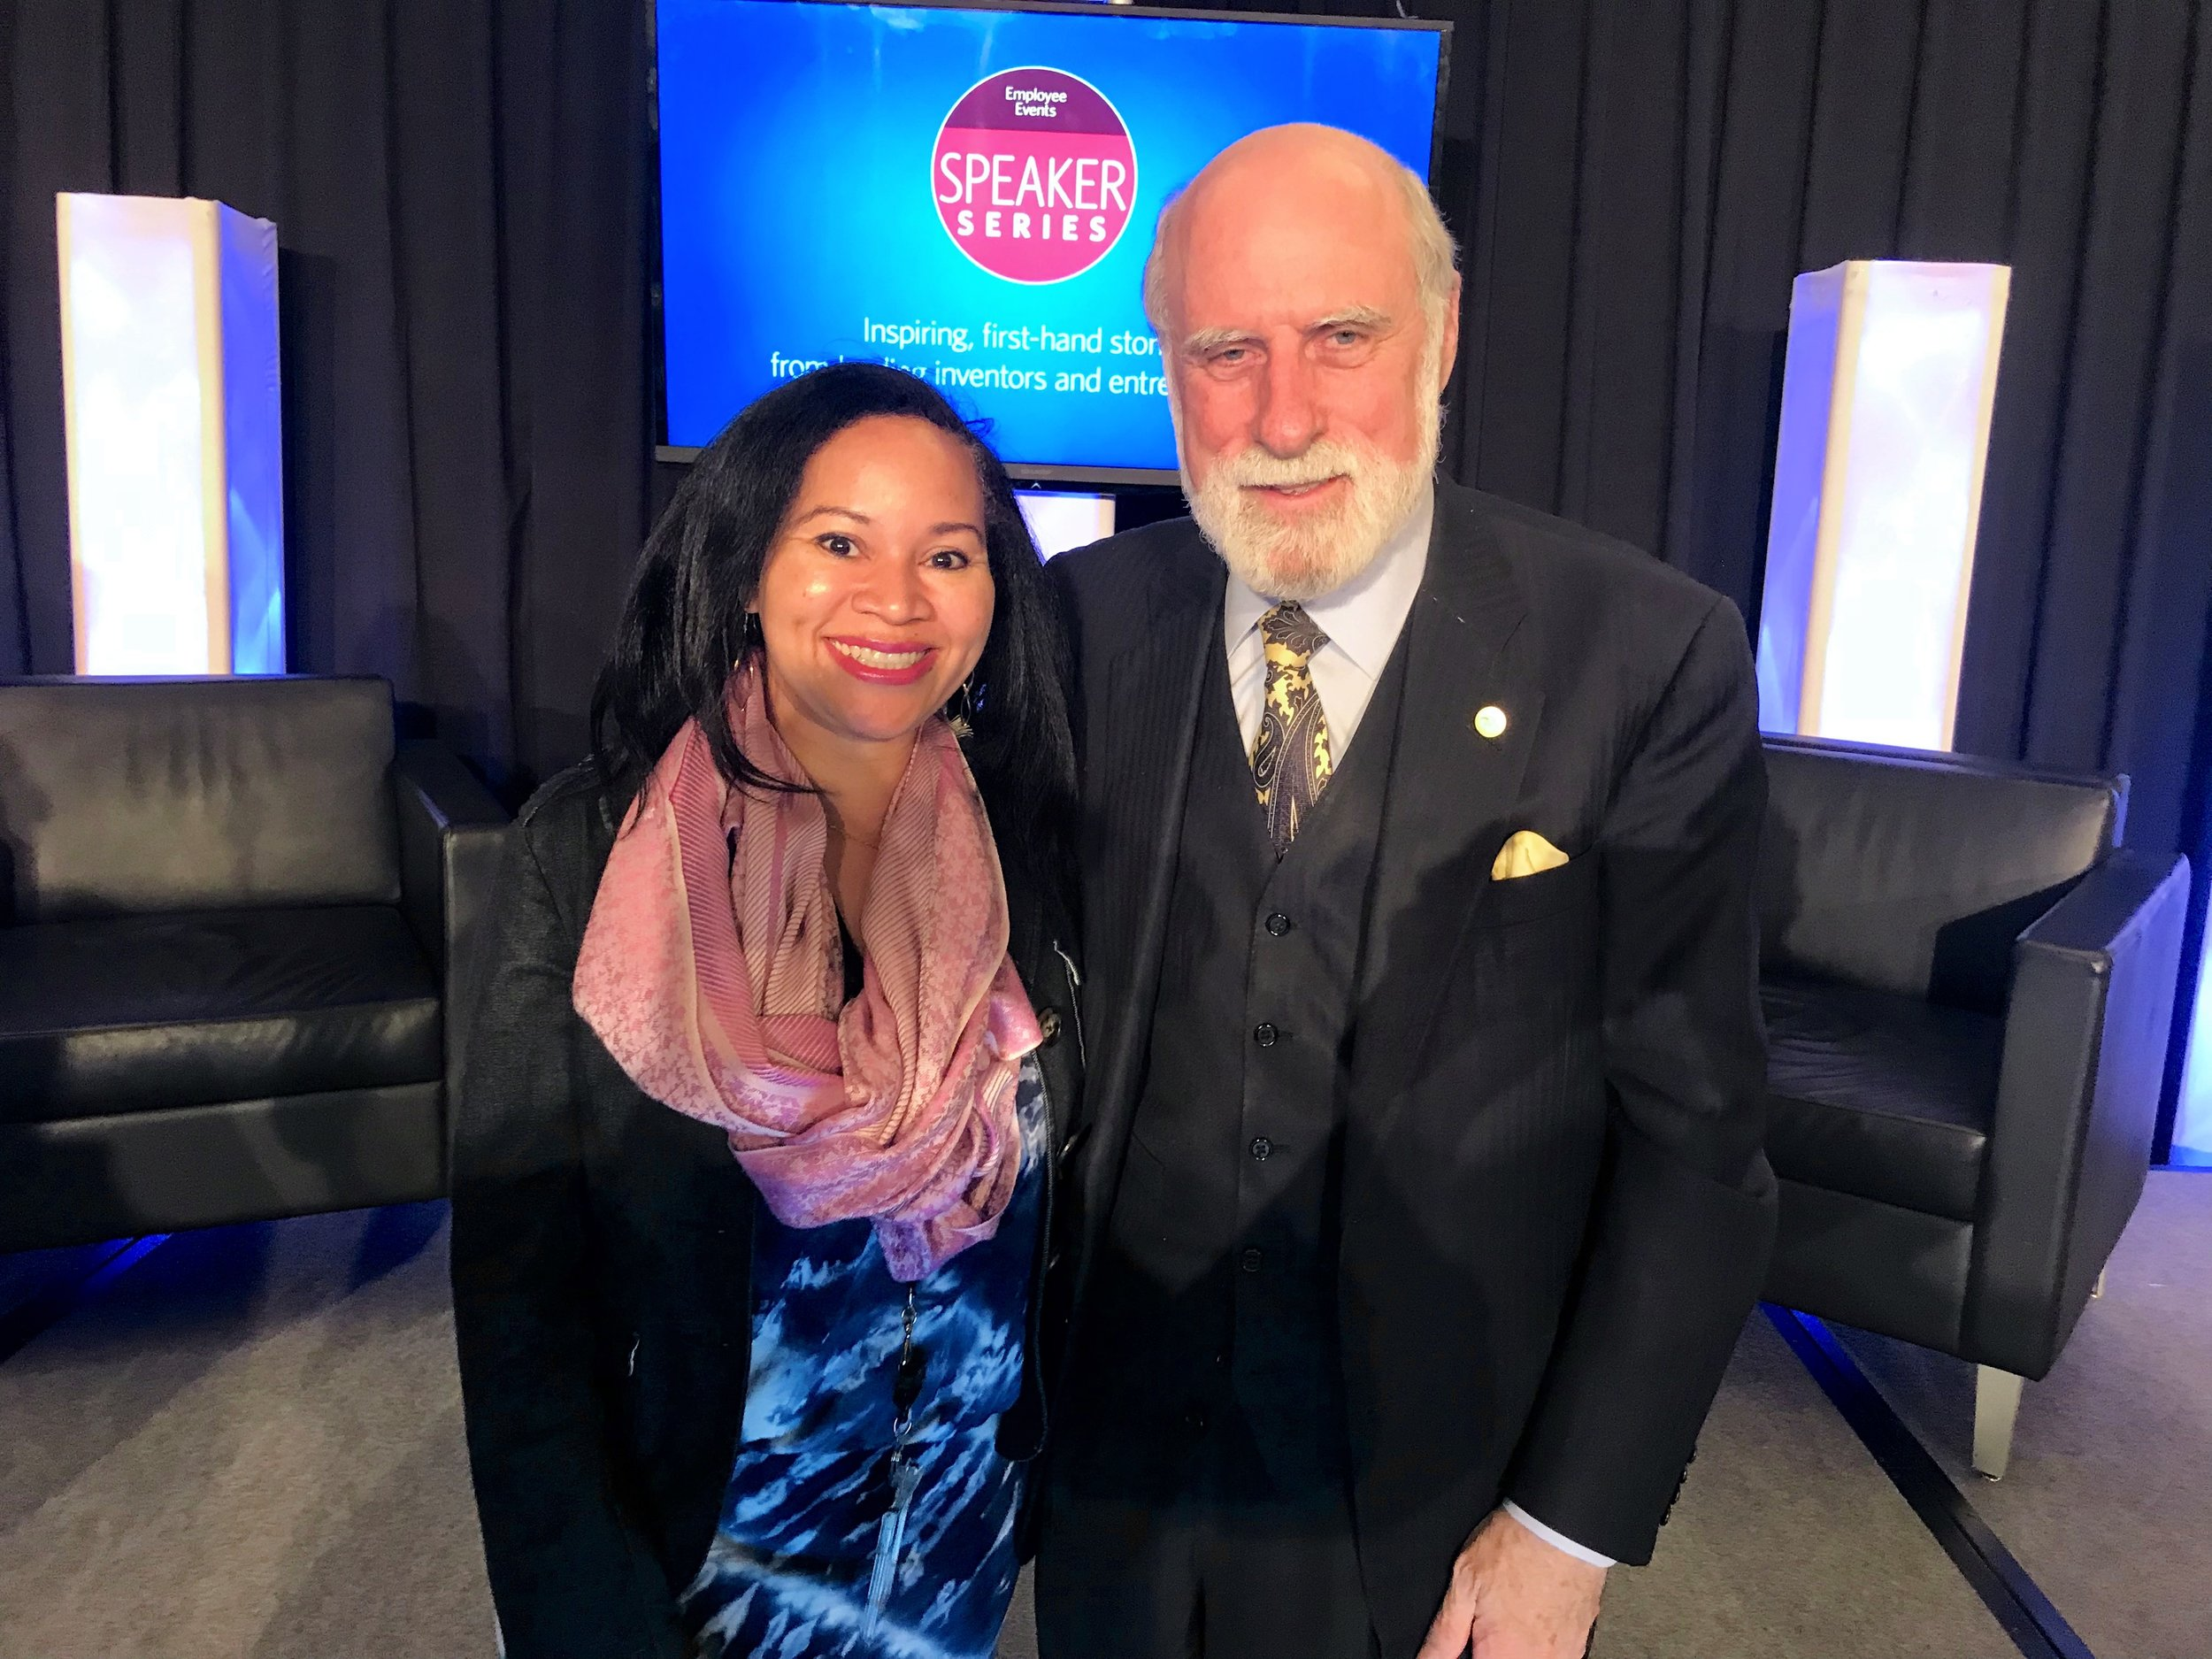 Tamra L. Dicus, California Is Me and Vint Cerf, a Father of the Internet